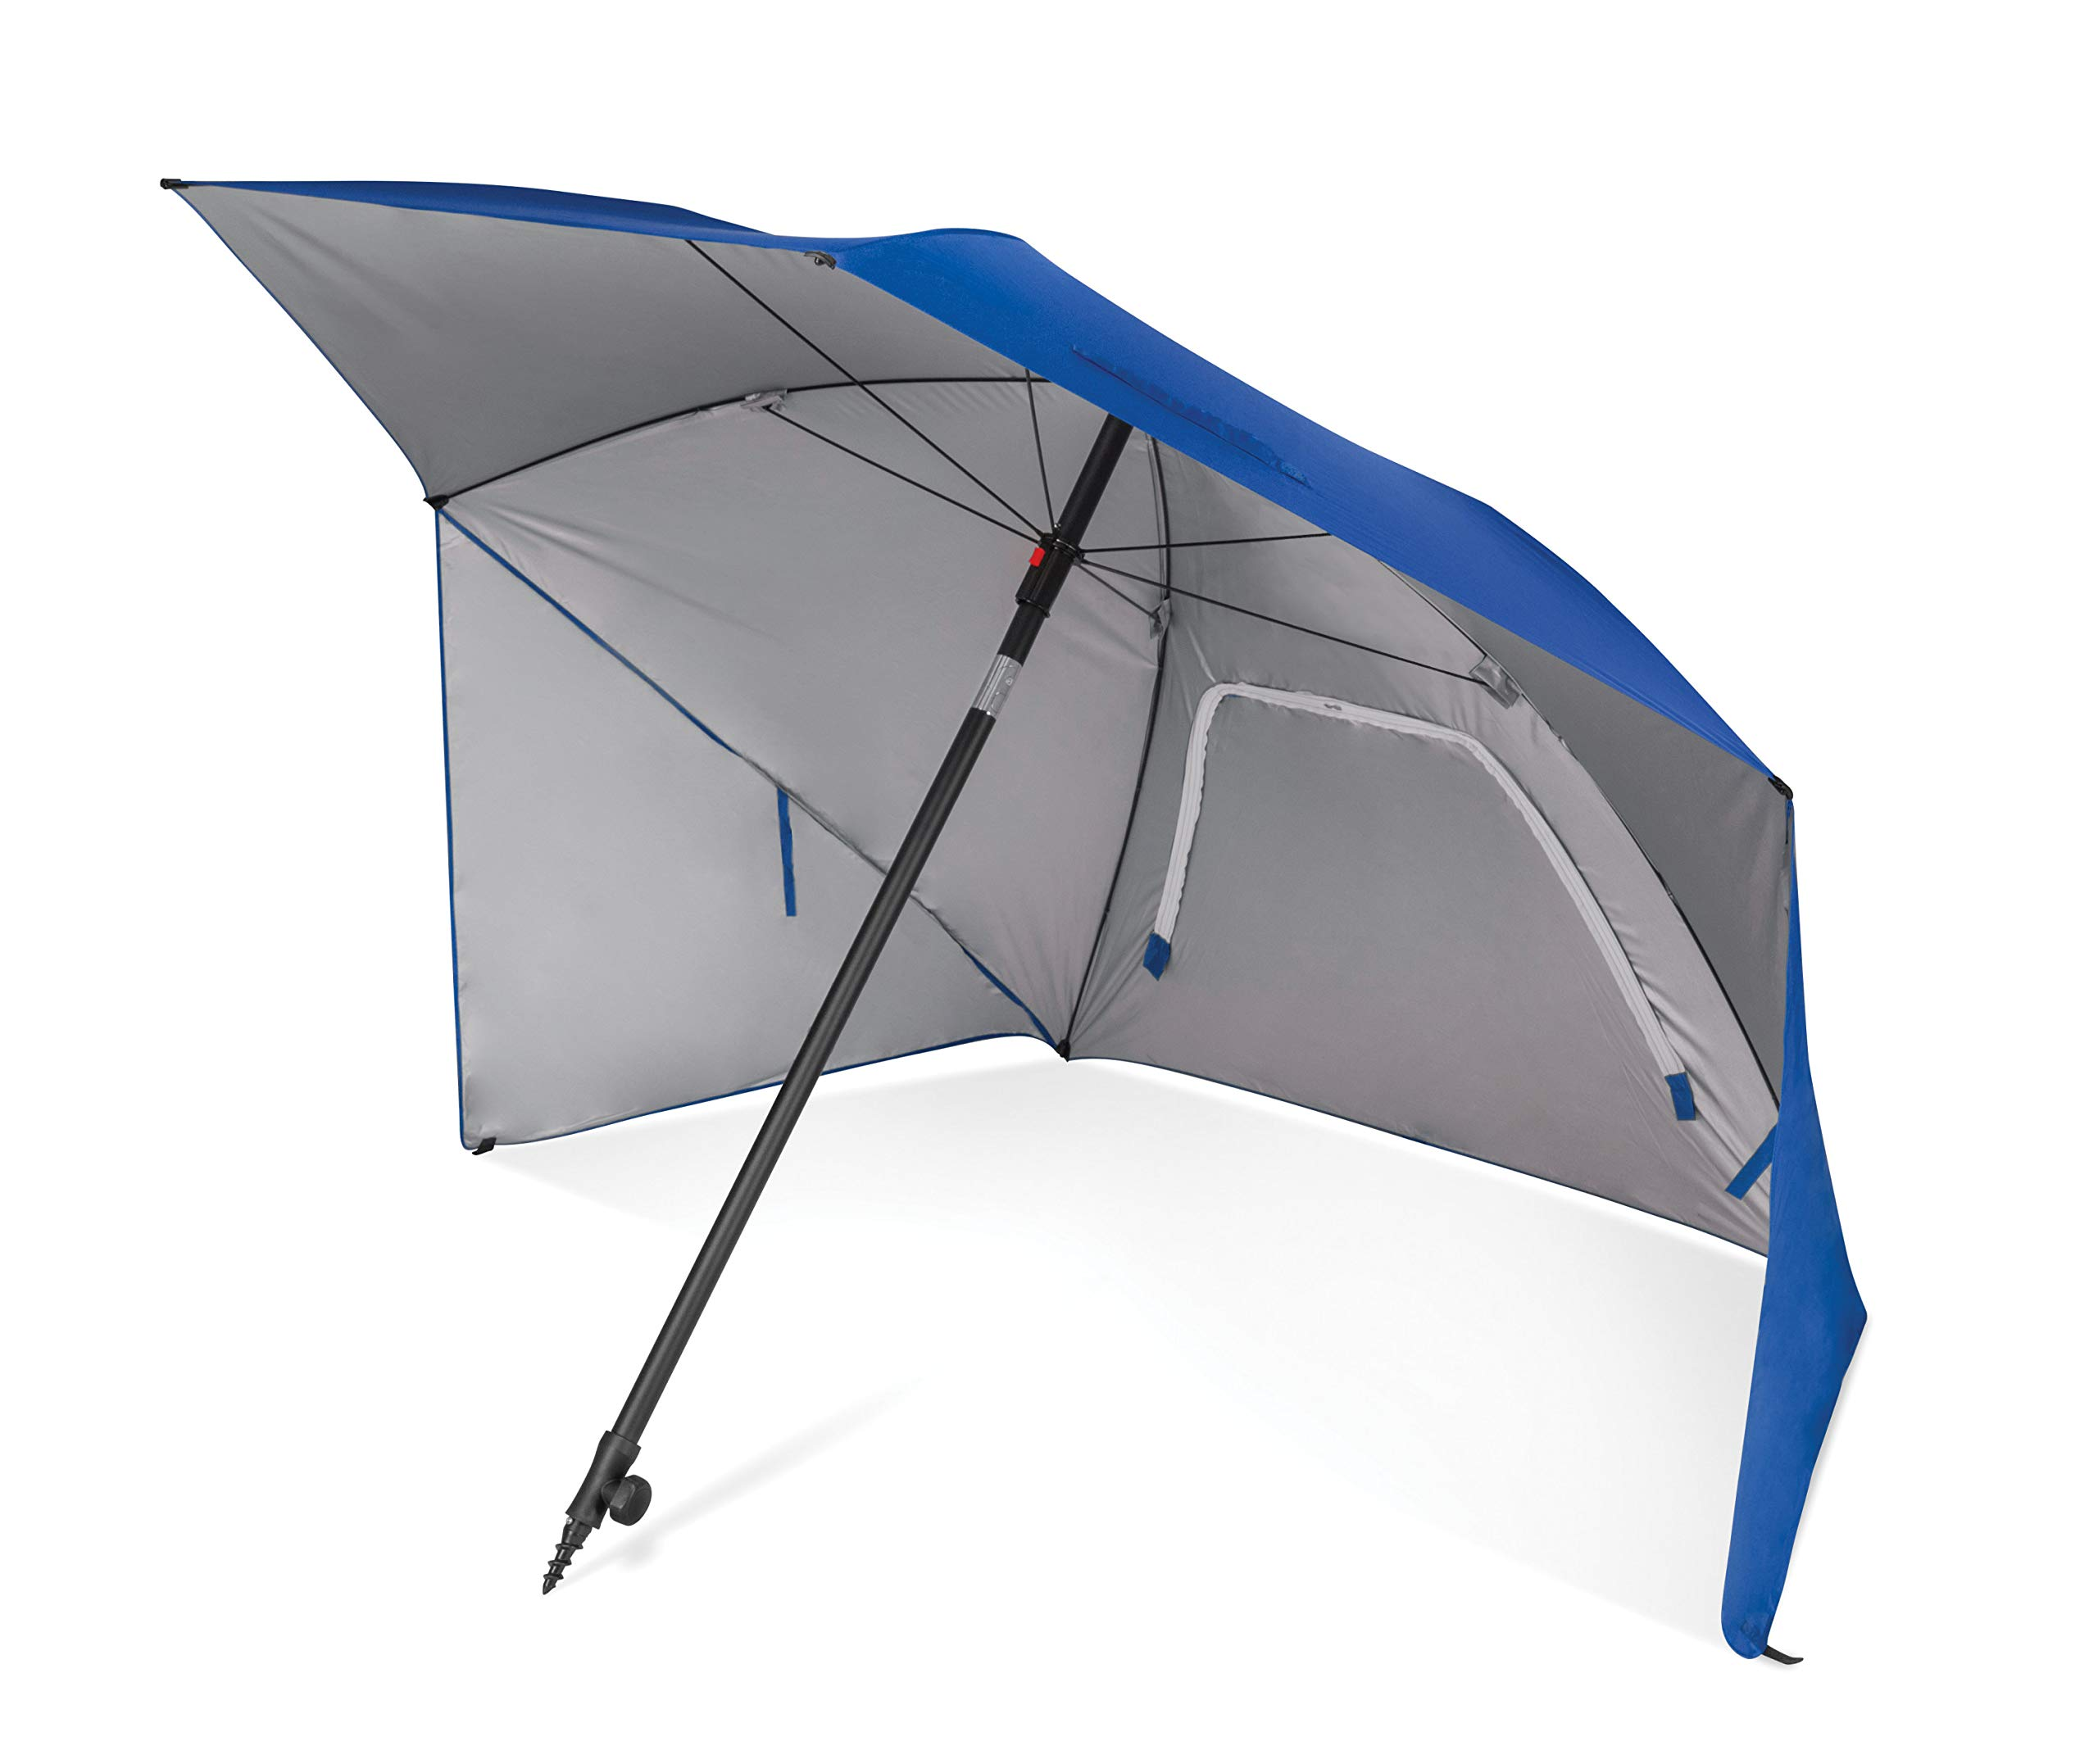 Sport-Brella Ultra SPF 50+ Angled Shade Canopy Umbrella for Optimum Sight Lines at Sports Events (8-Foot), Blue by Sport-Brella